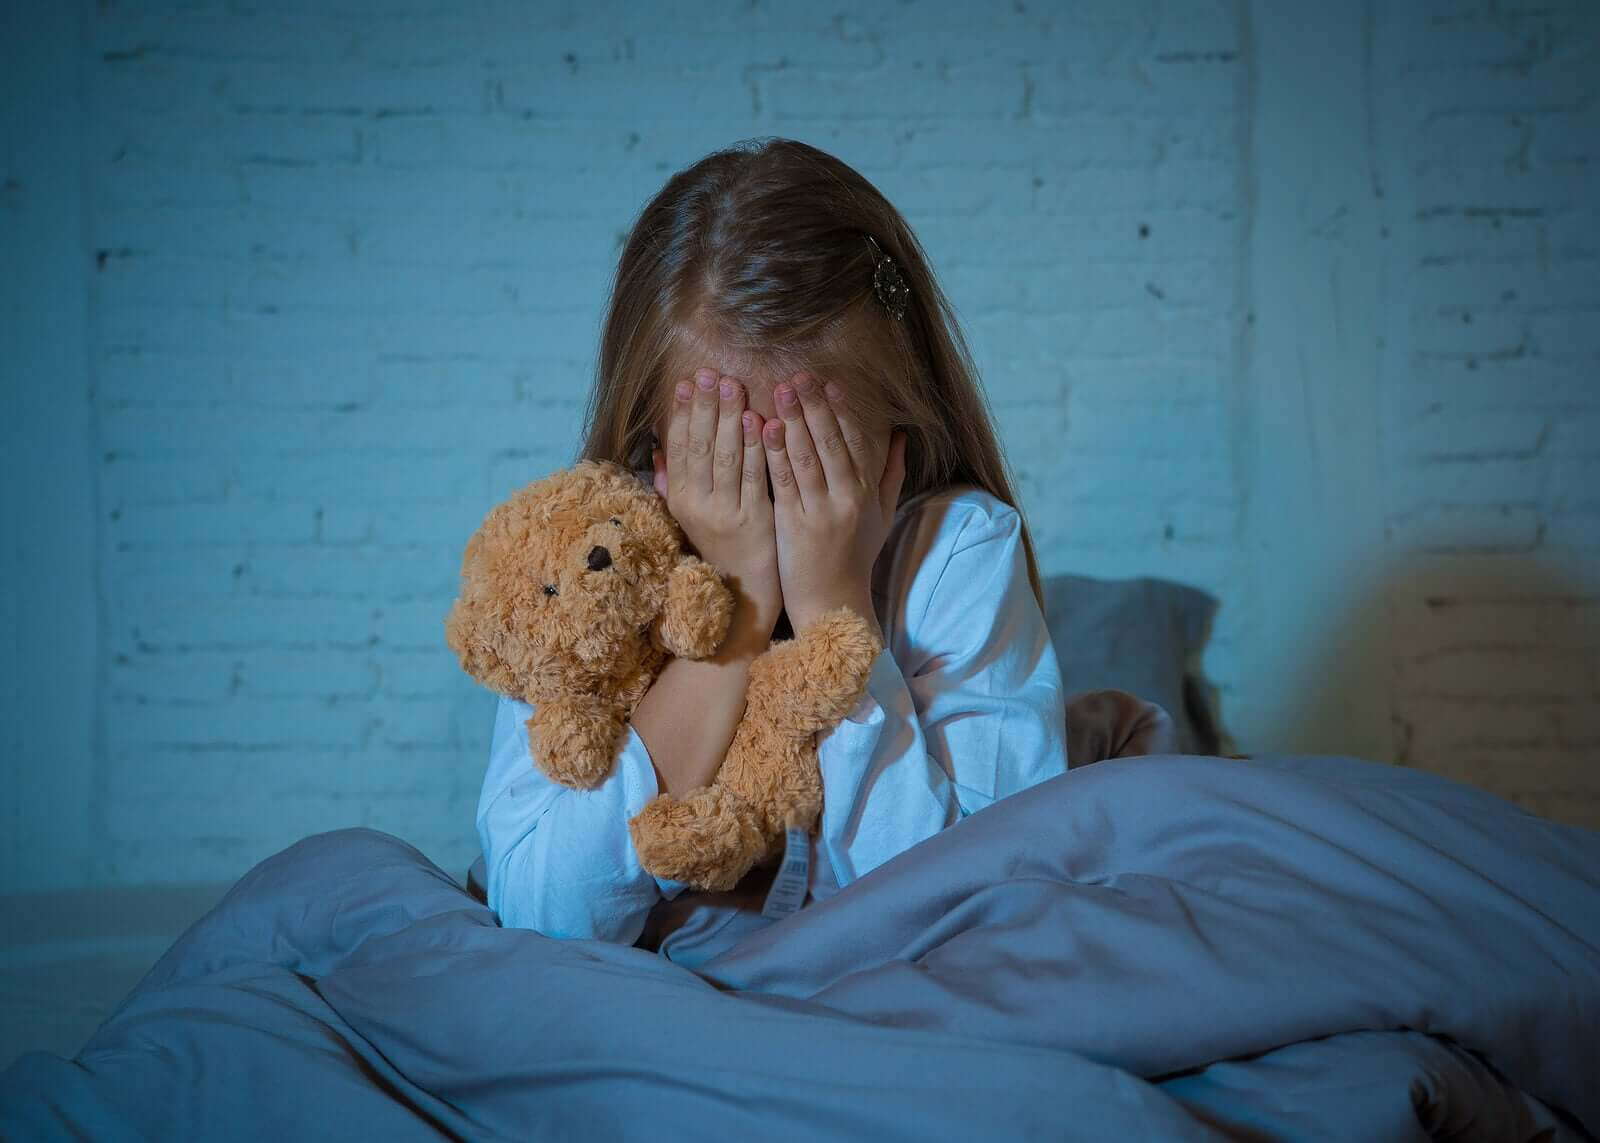 A young girl crying in her bed during the night.